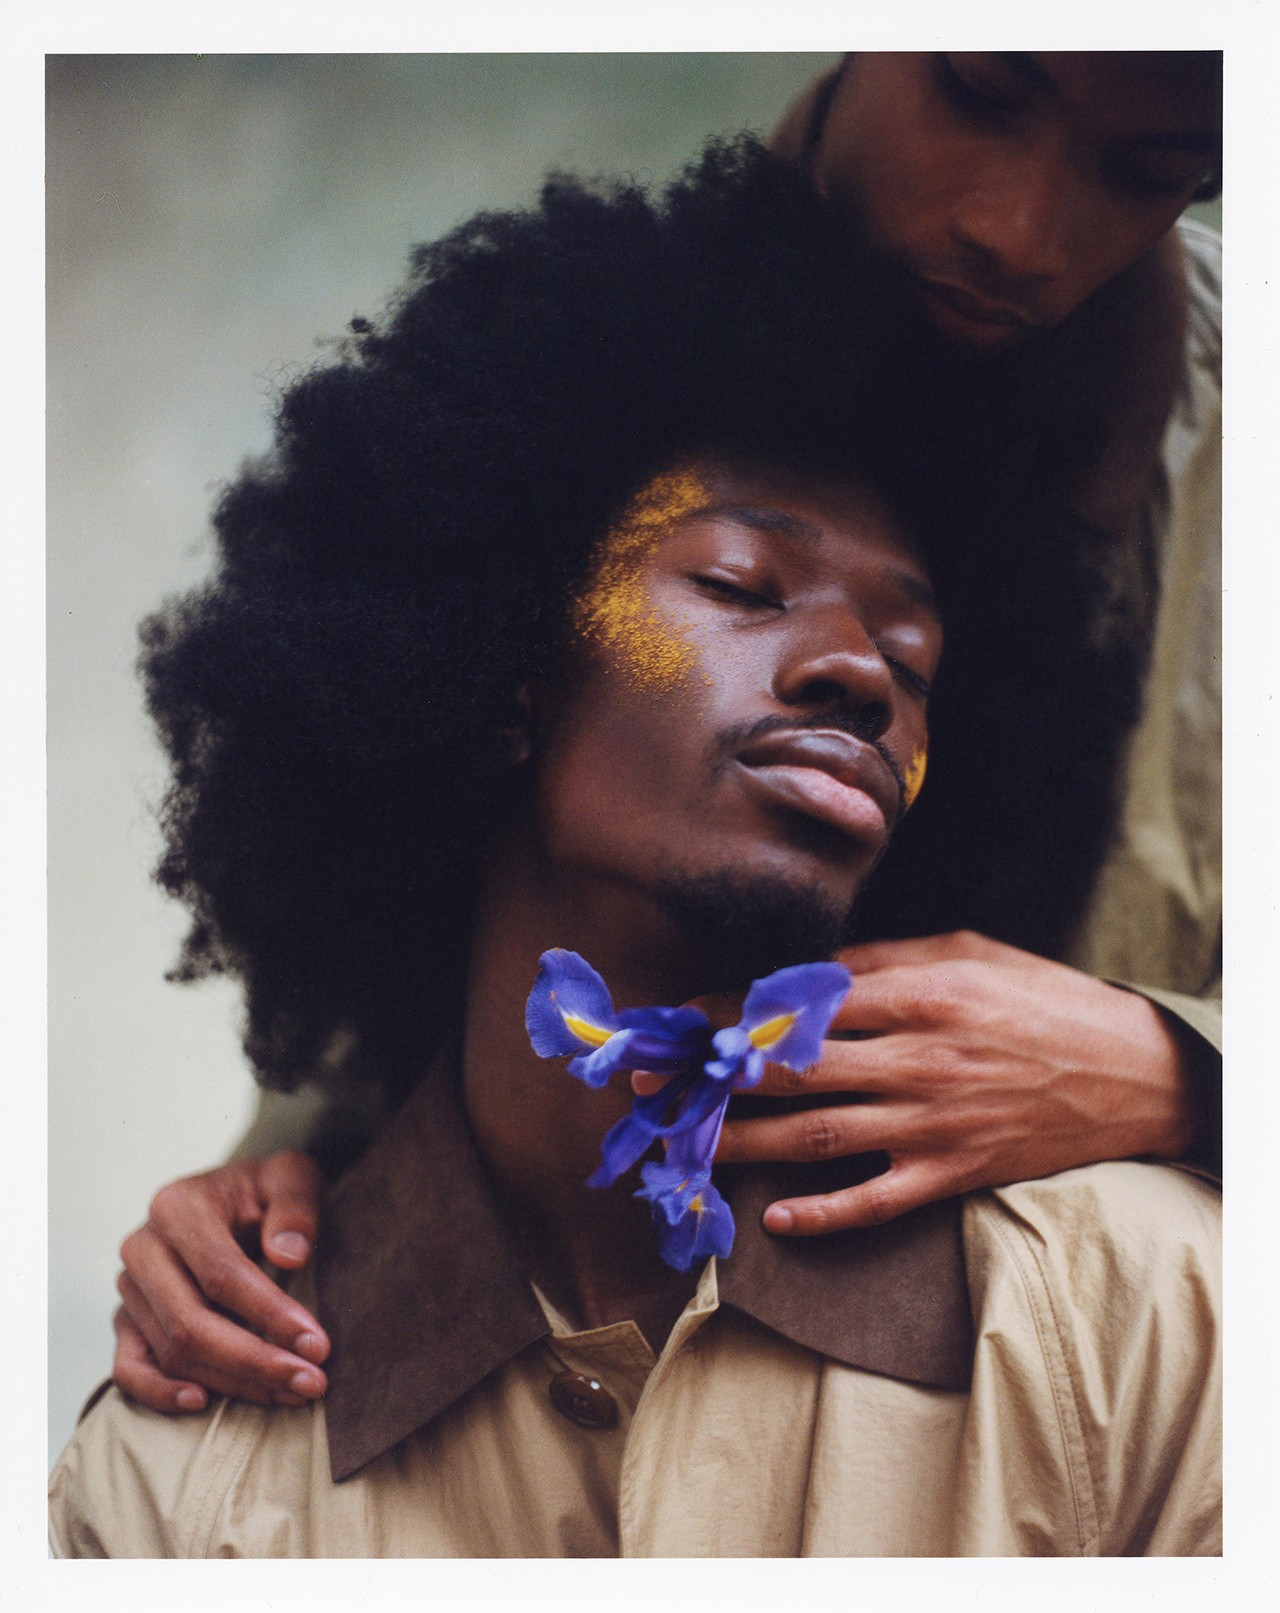 Myles Loftin Photographer Untitled Ashley Court My Queer Blackness Black Queerness